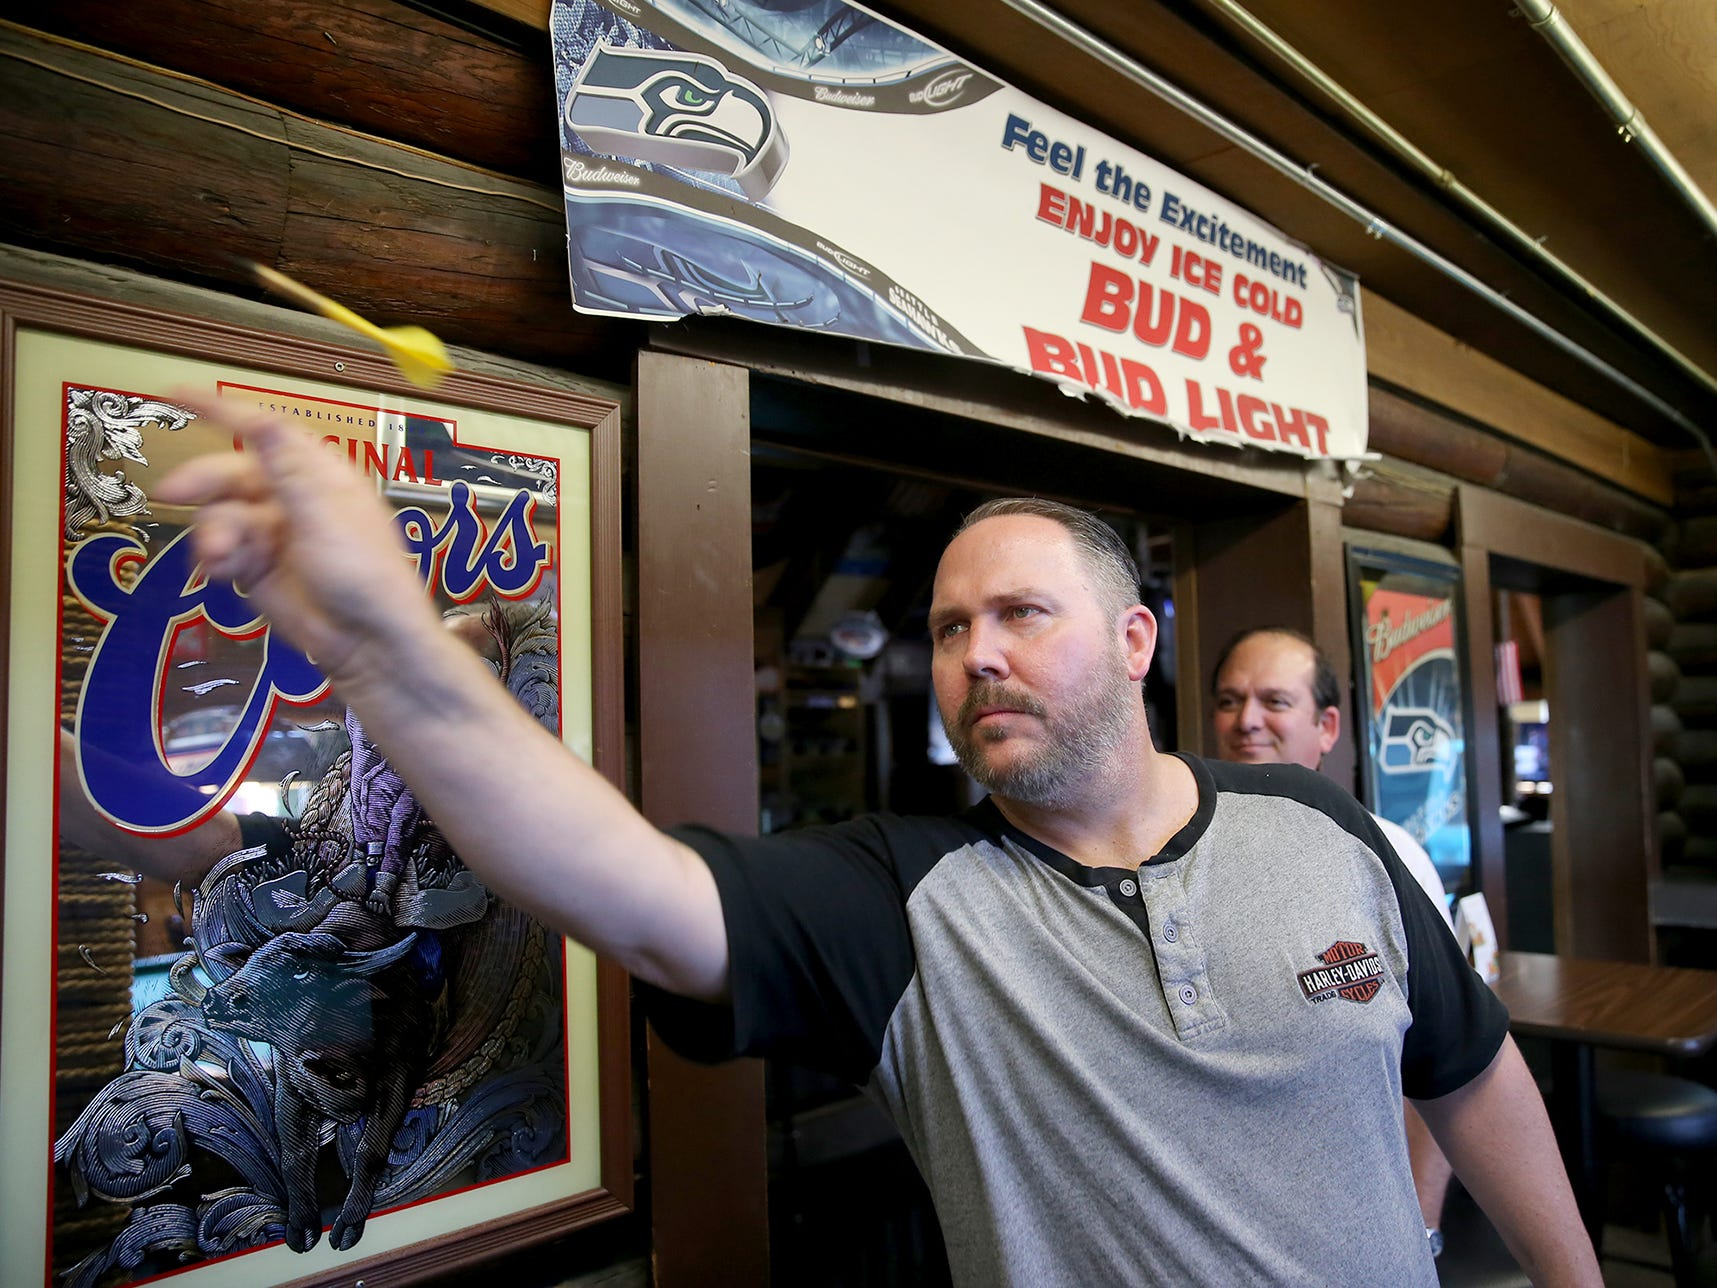 Our Place Pub and Eatery regular customer Joey VanVuren, of Silverdale, throws darts.